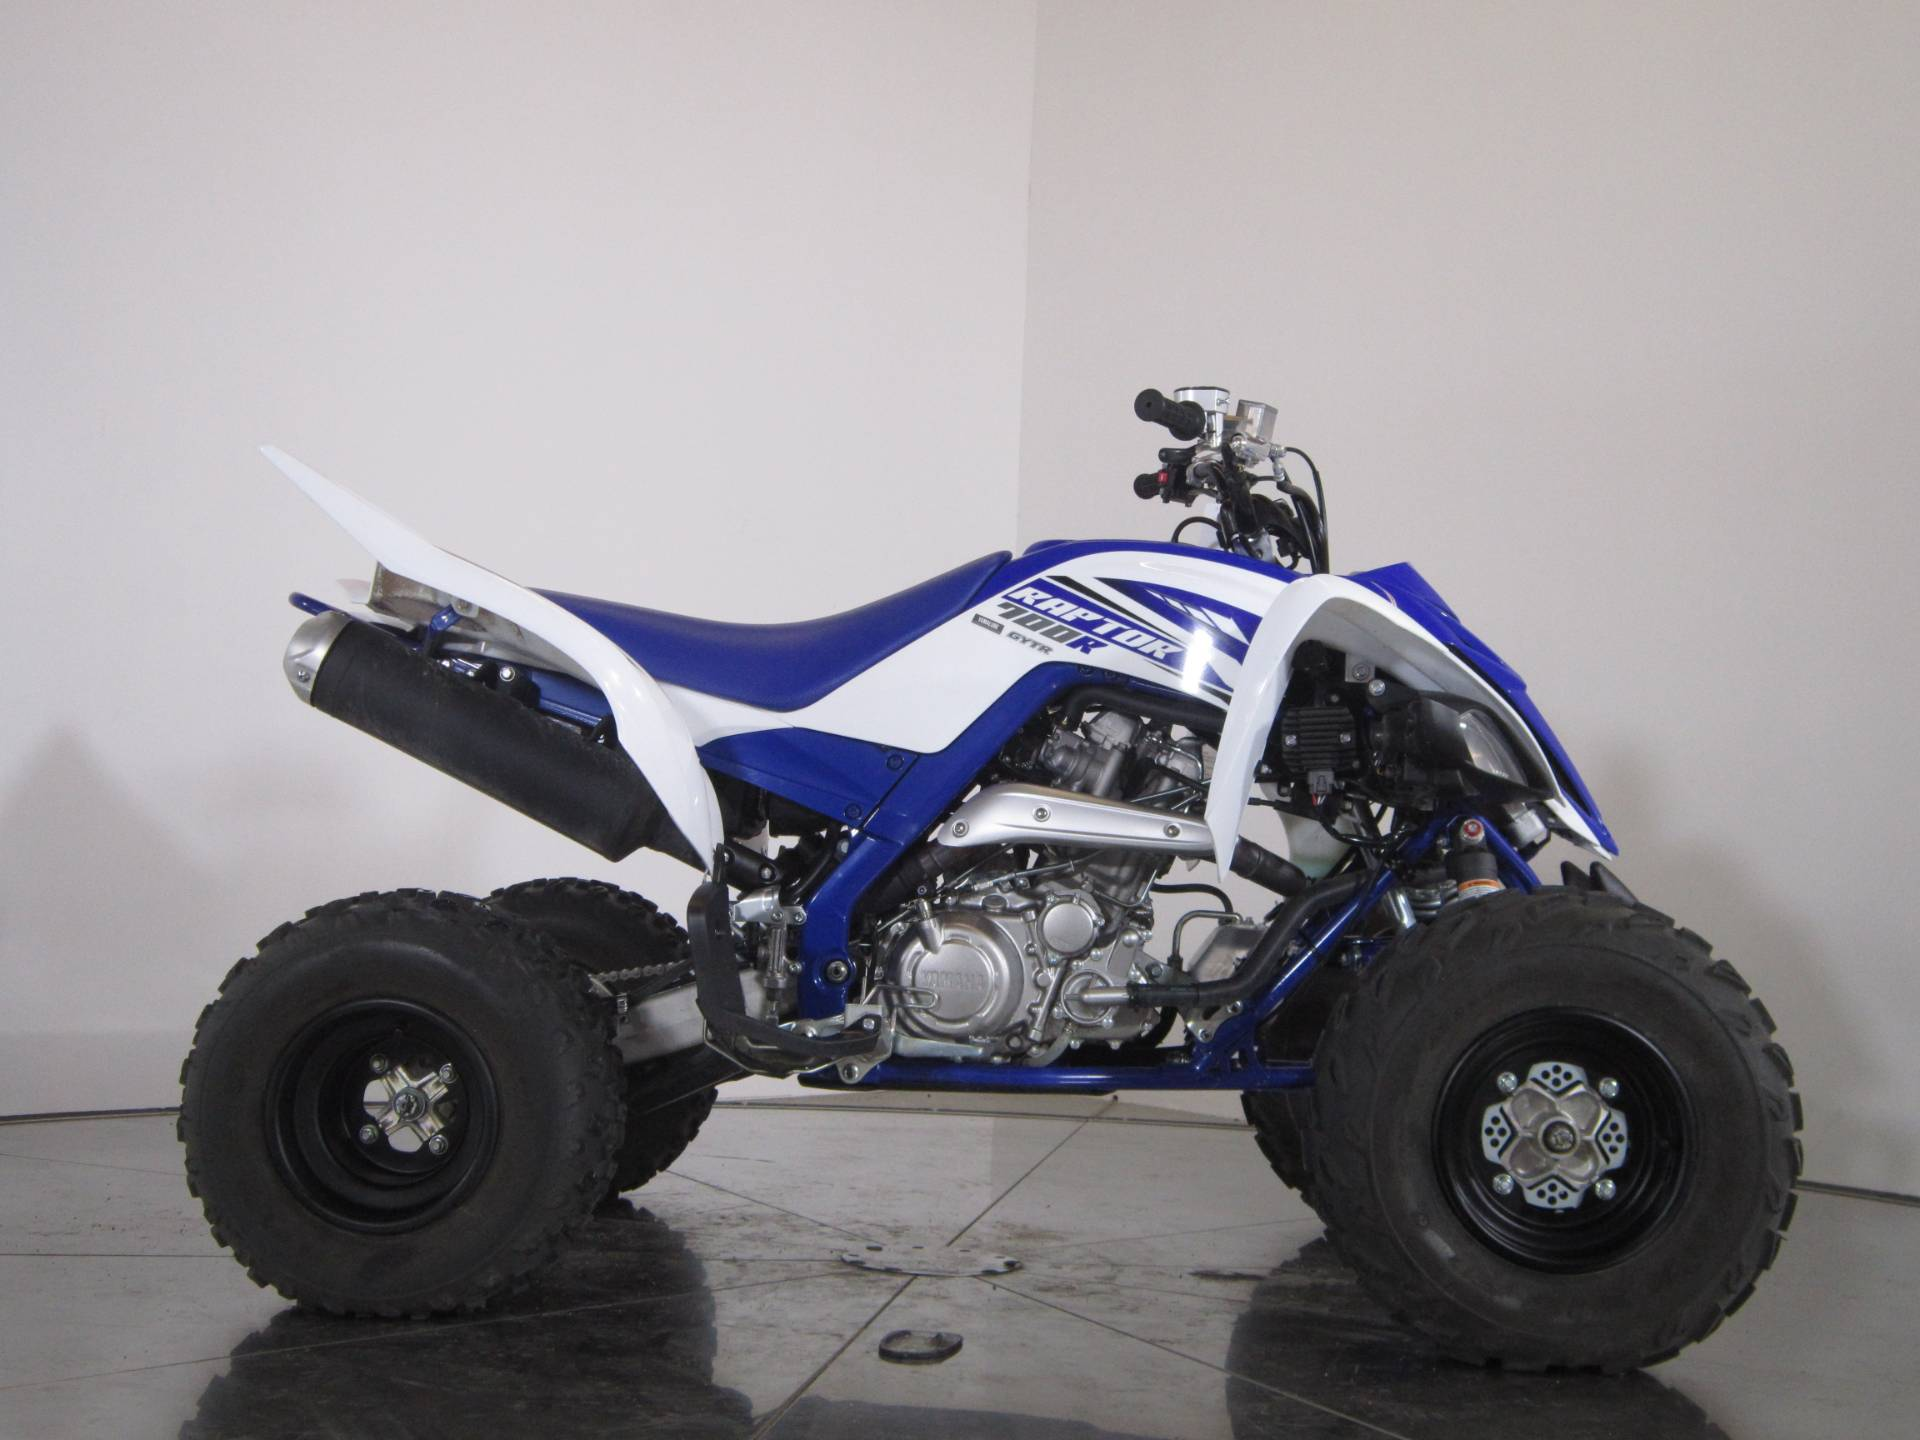 2017 Yamaha Raptor 700R for sale 138926